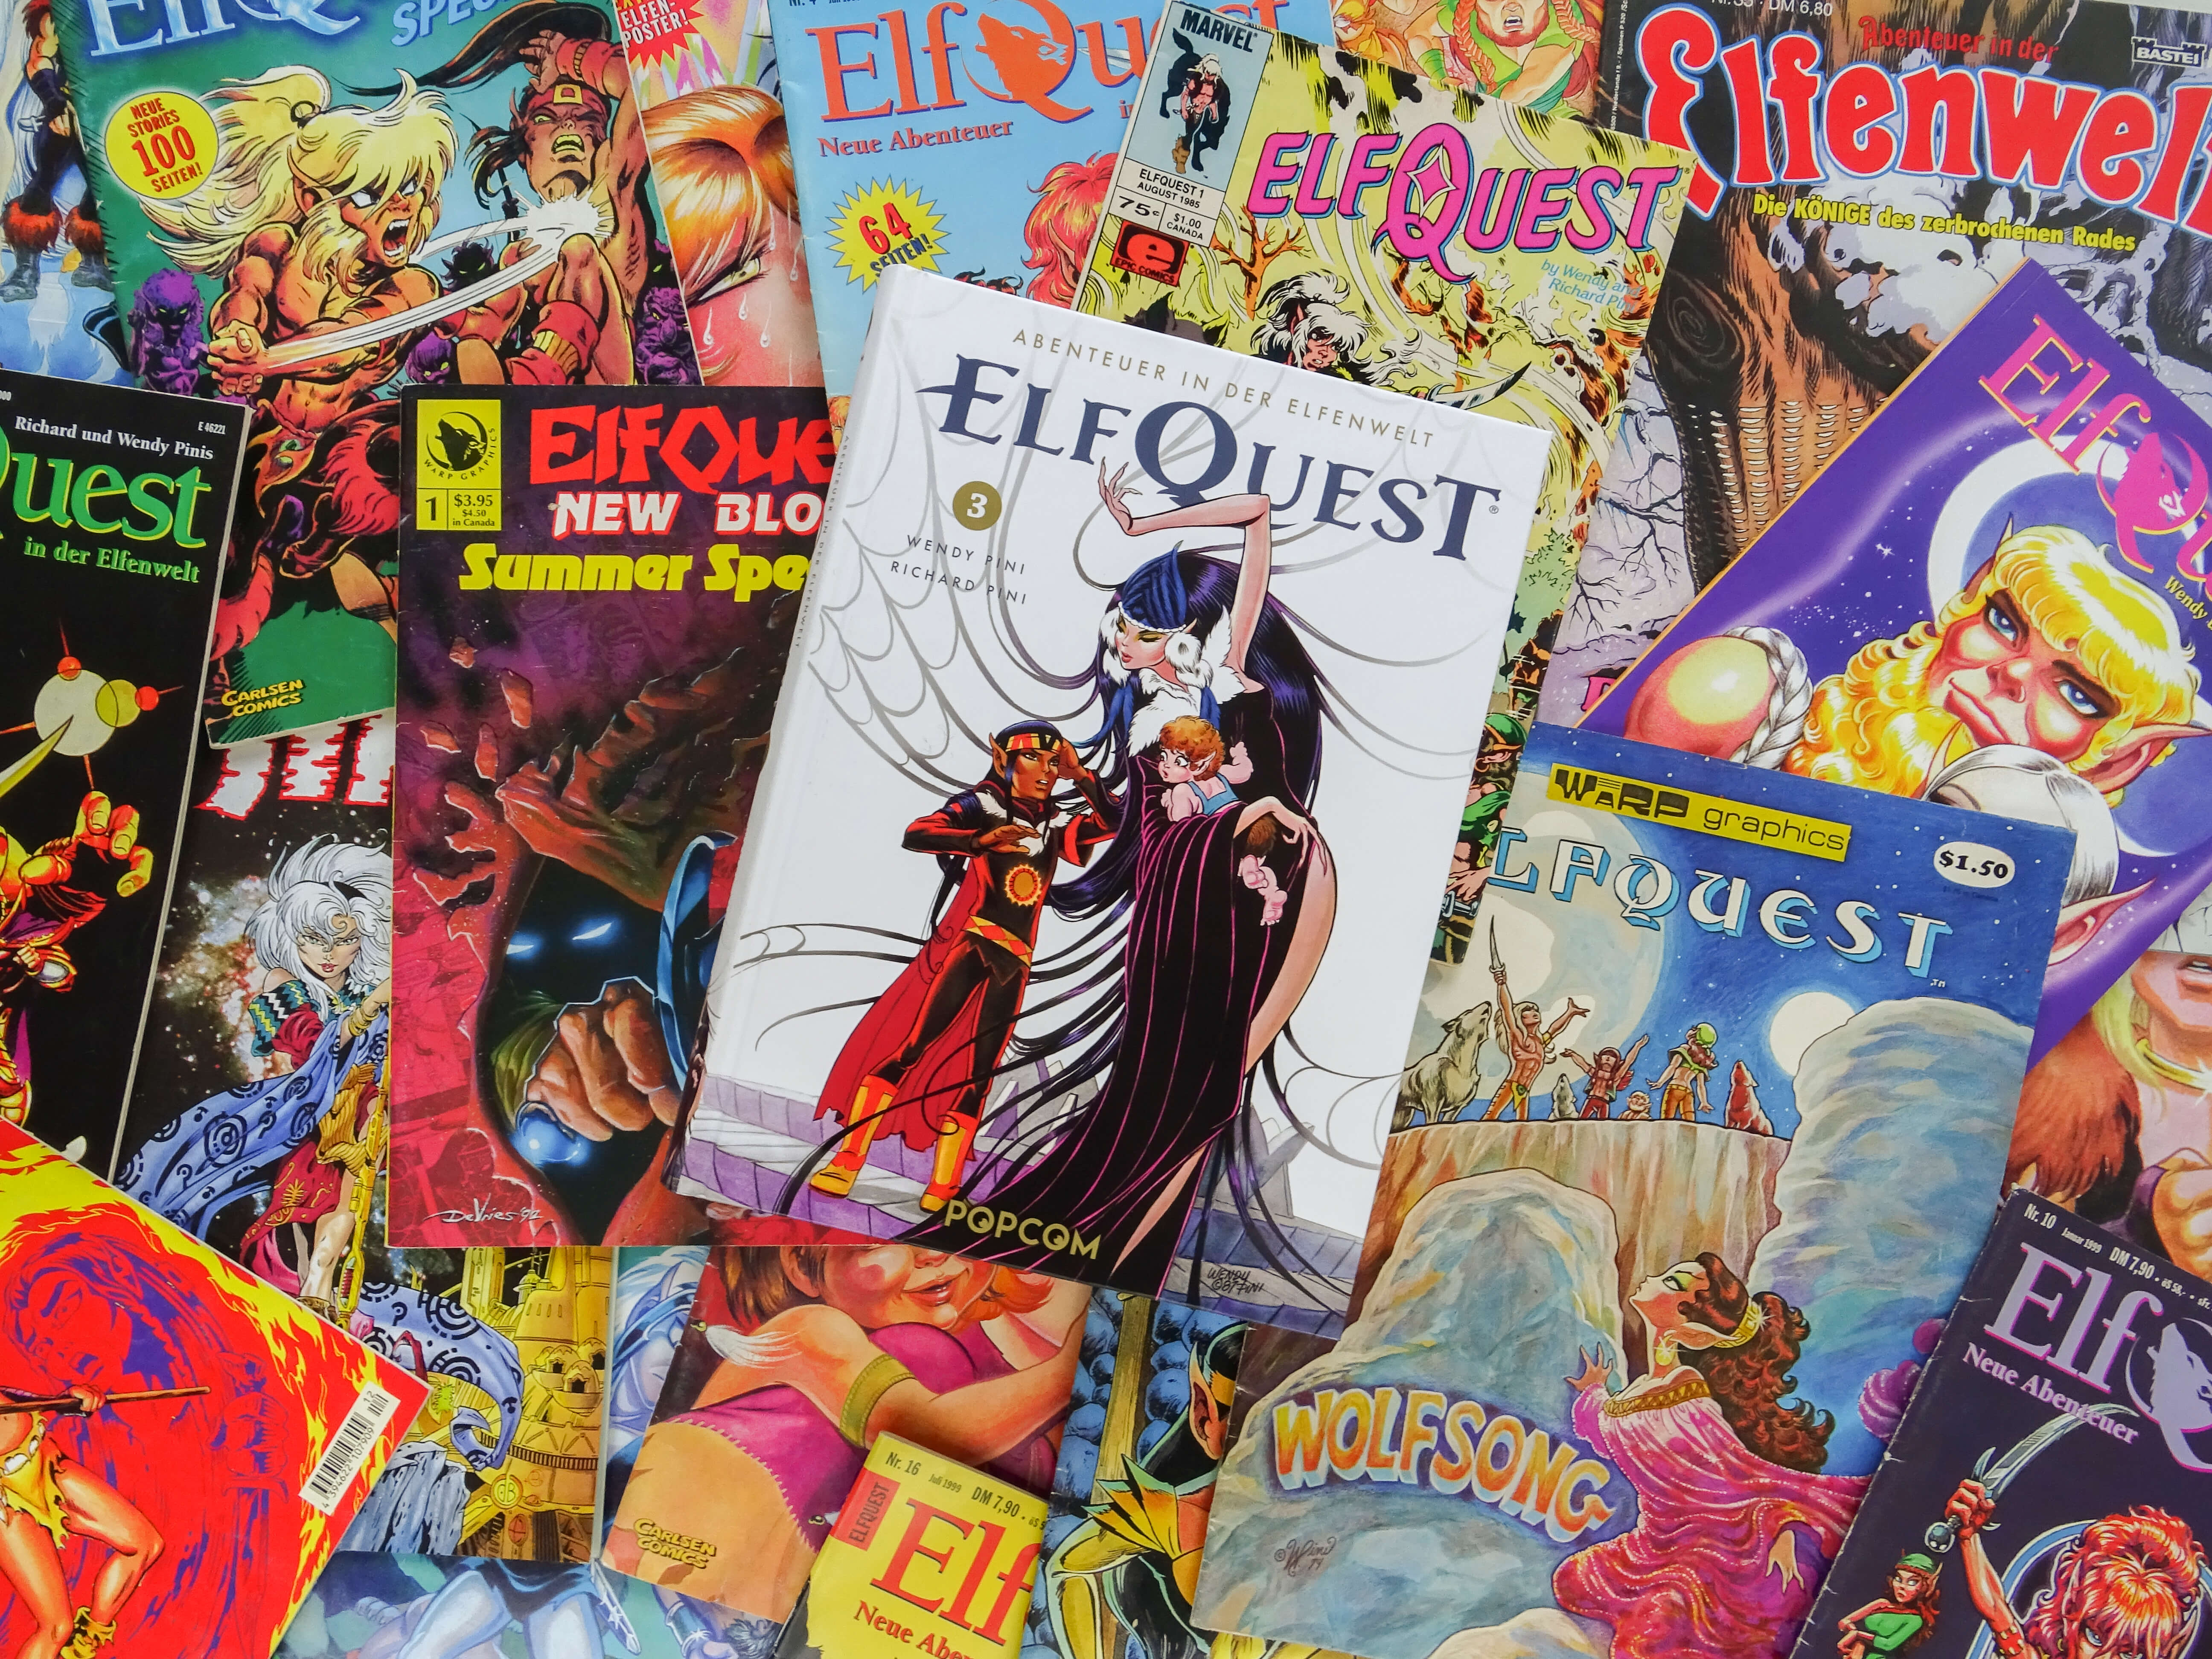 Herzenswelten ElfQuest